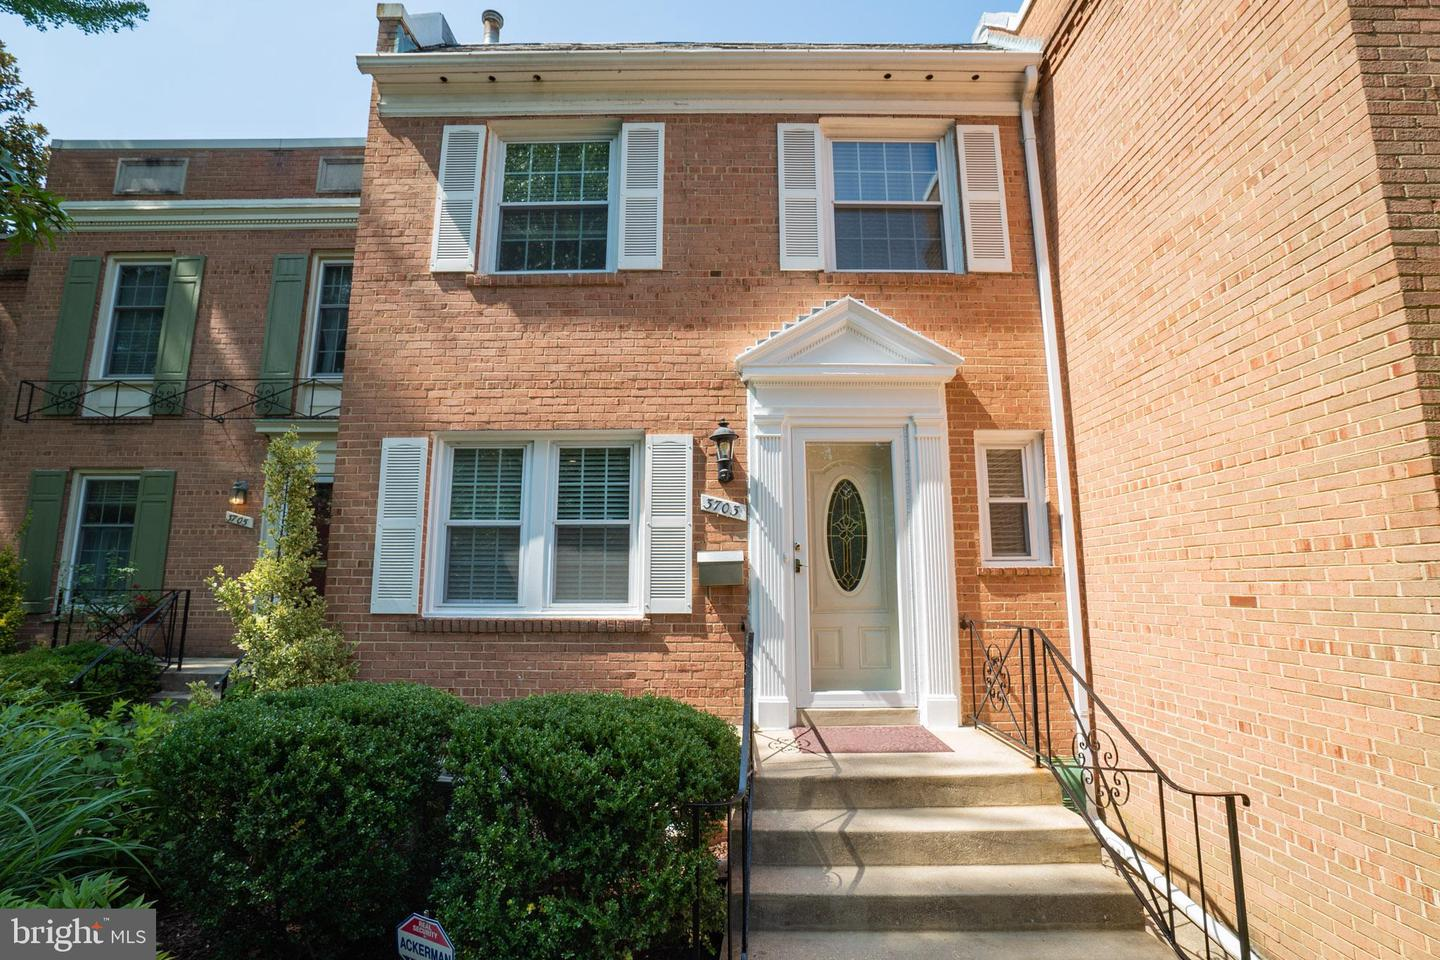 3703 HUNTINGTON STREET NW, WASHINGTON, District of Columbia